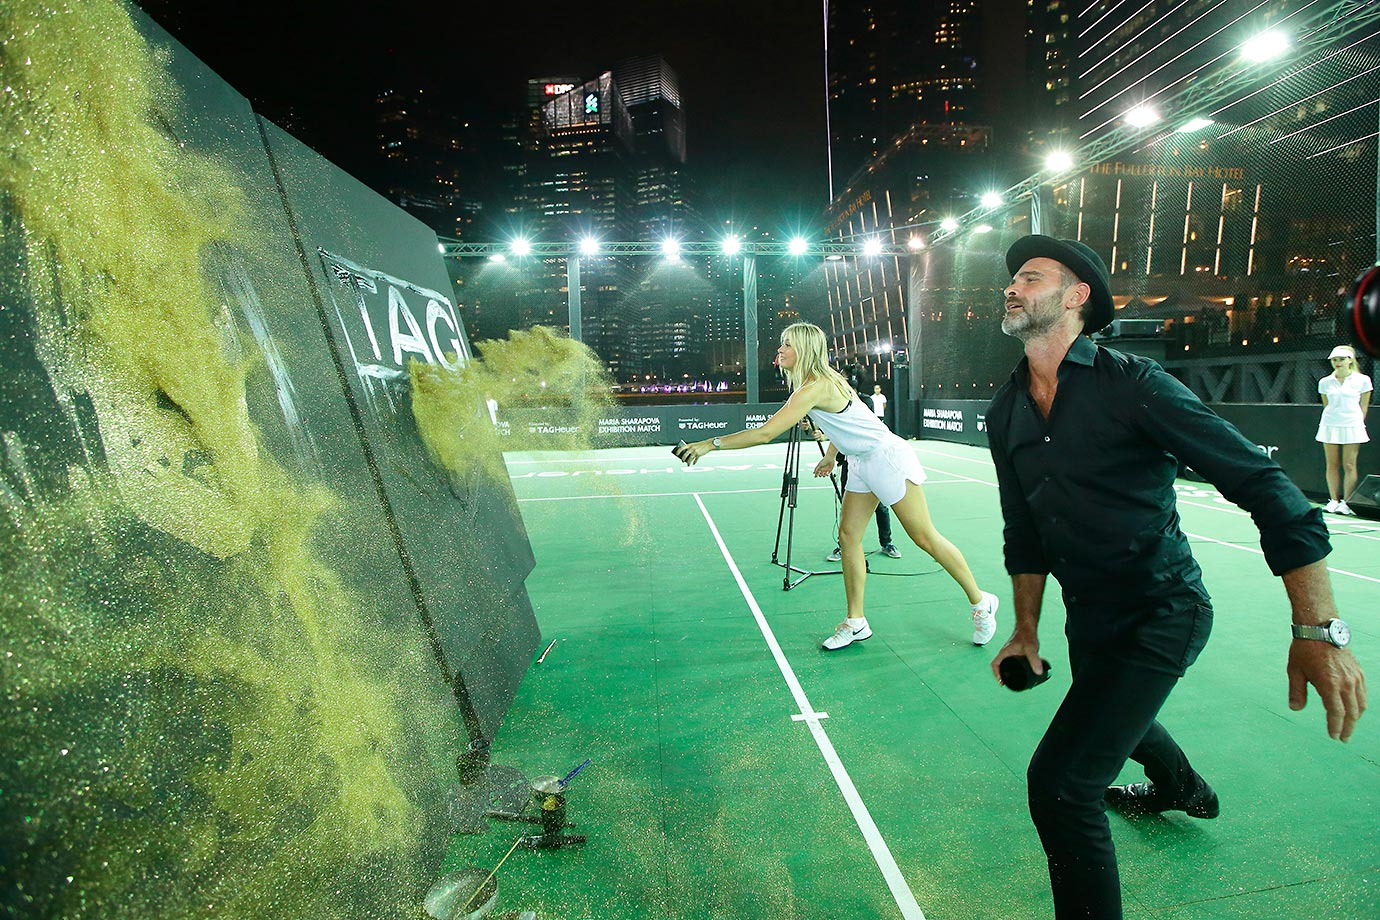 Maria Sharapova and speed painting artist Michael Raivard throw gold dust to reveal a portrait during a Maria Sharapova exhibition match in Singapore.